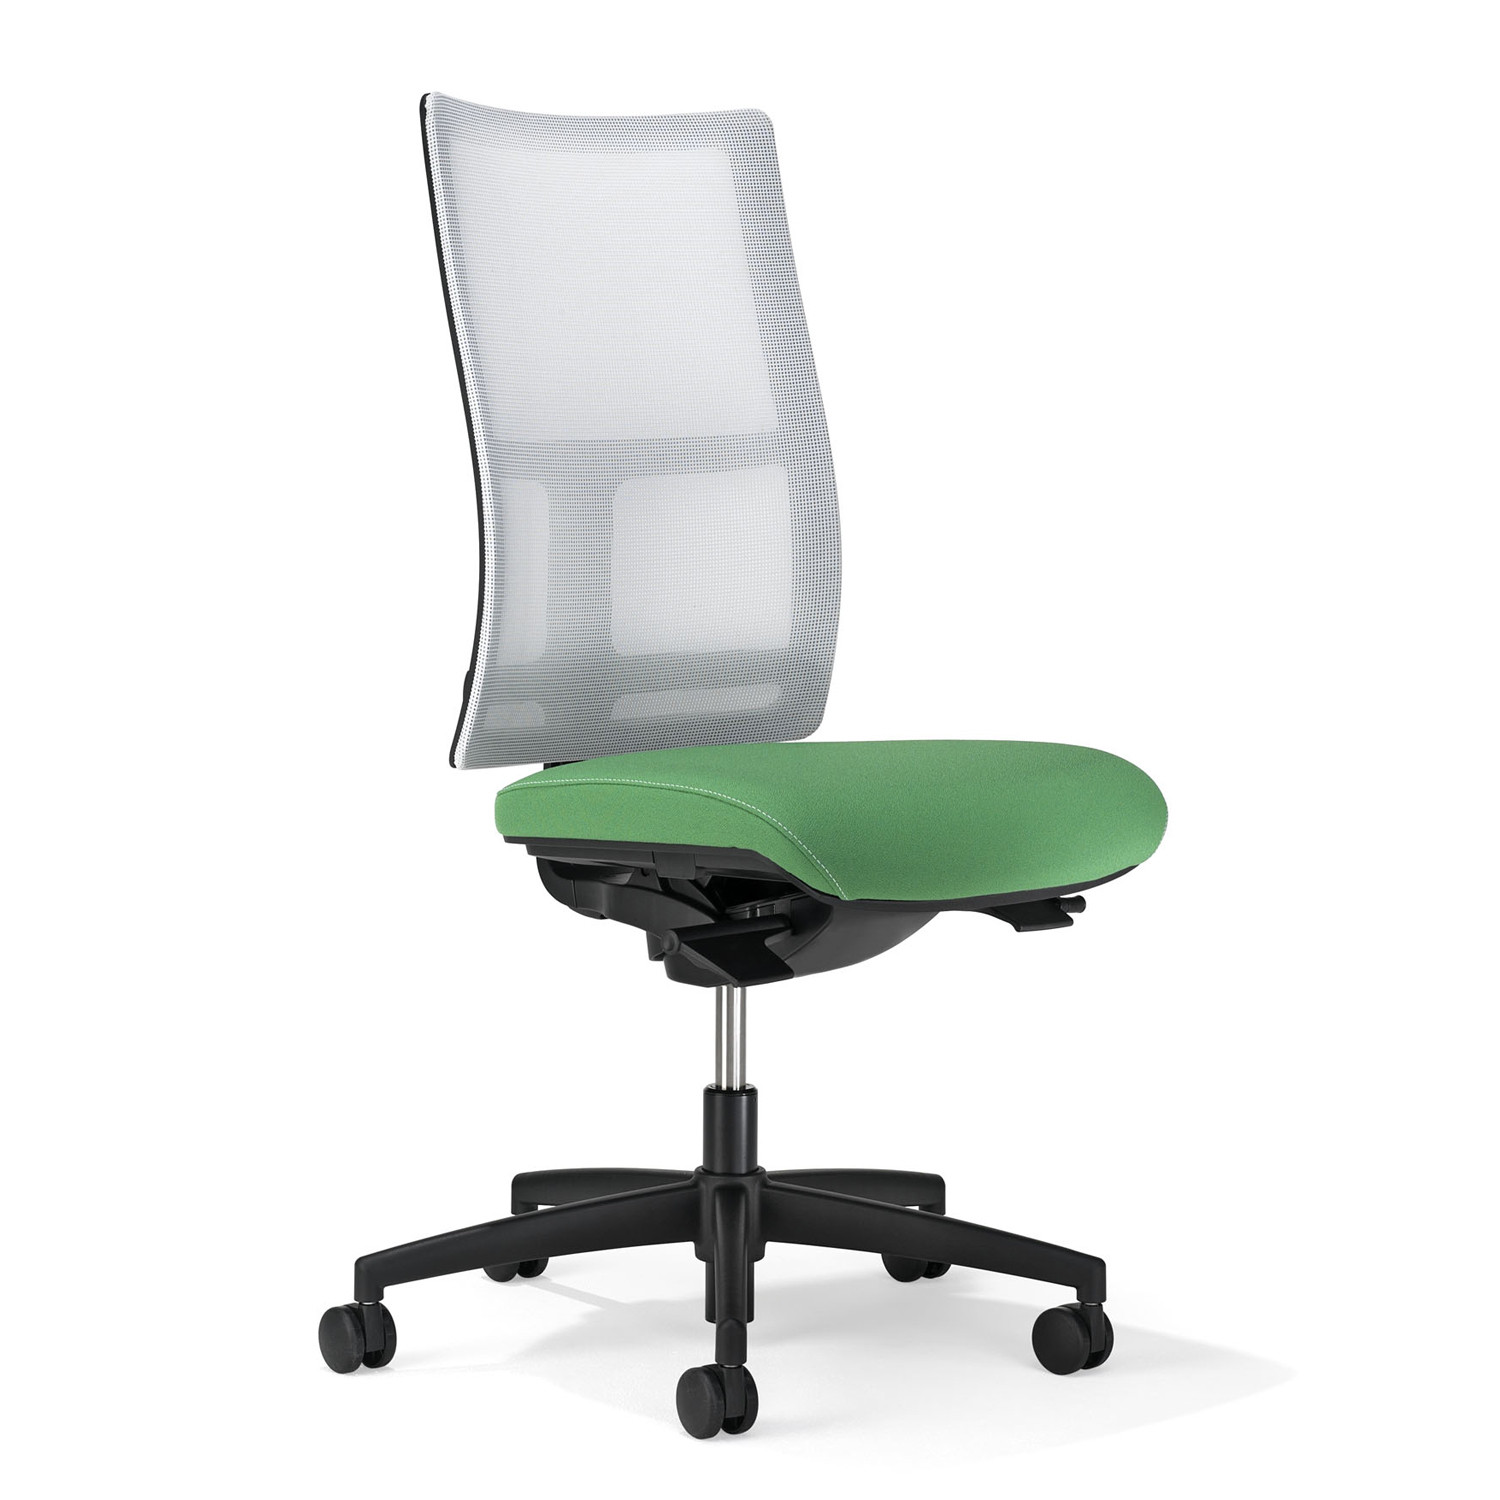 Kusch+Co 9200 Papilio Mesh Office Chair